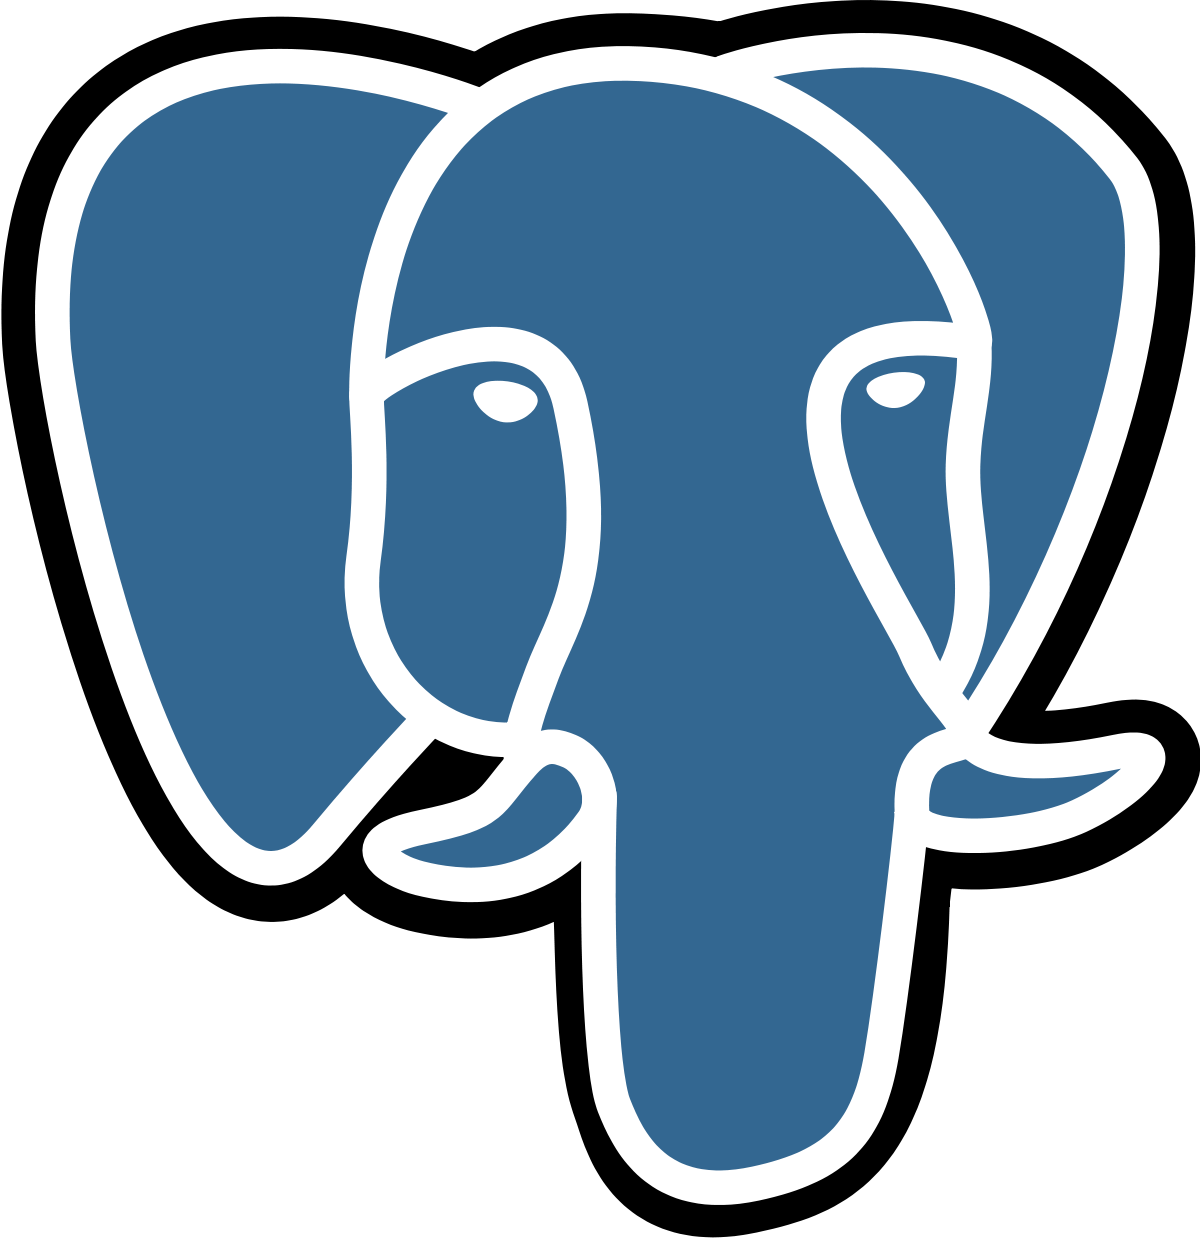 postgresql support services image